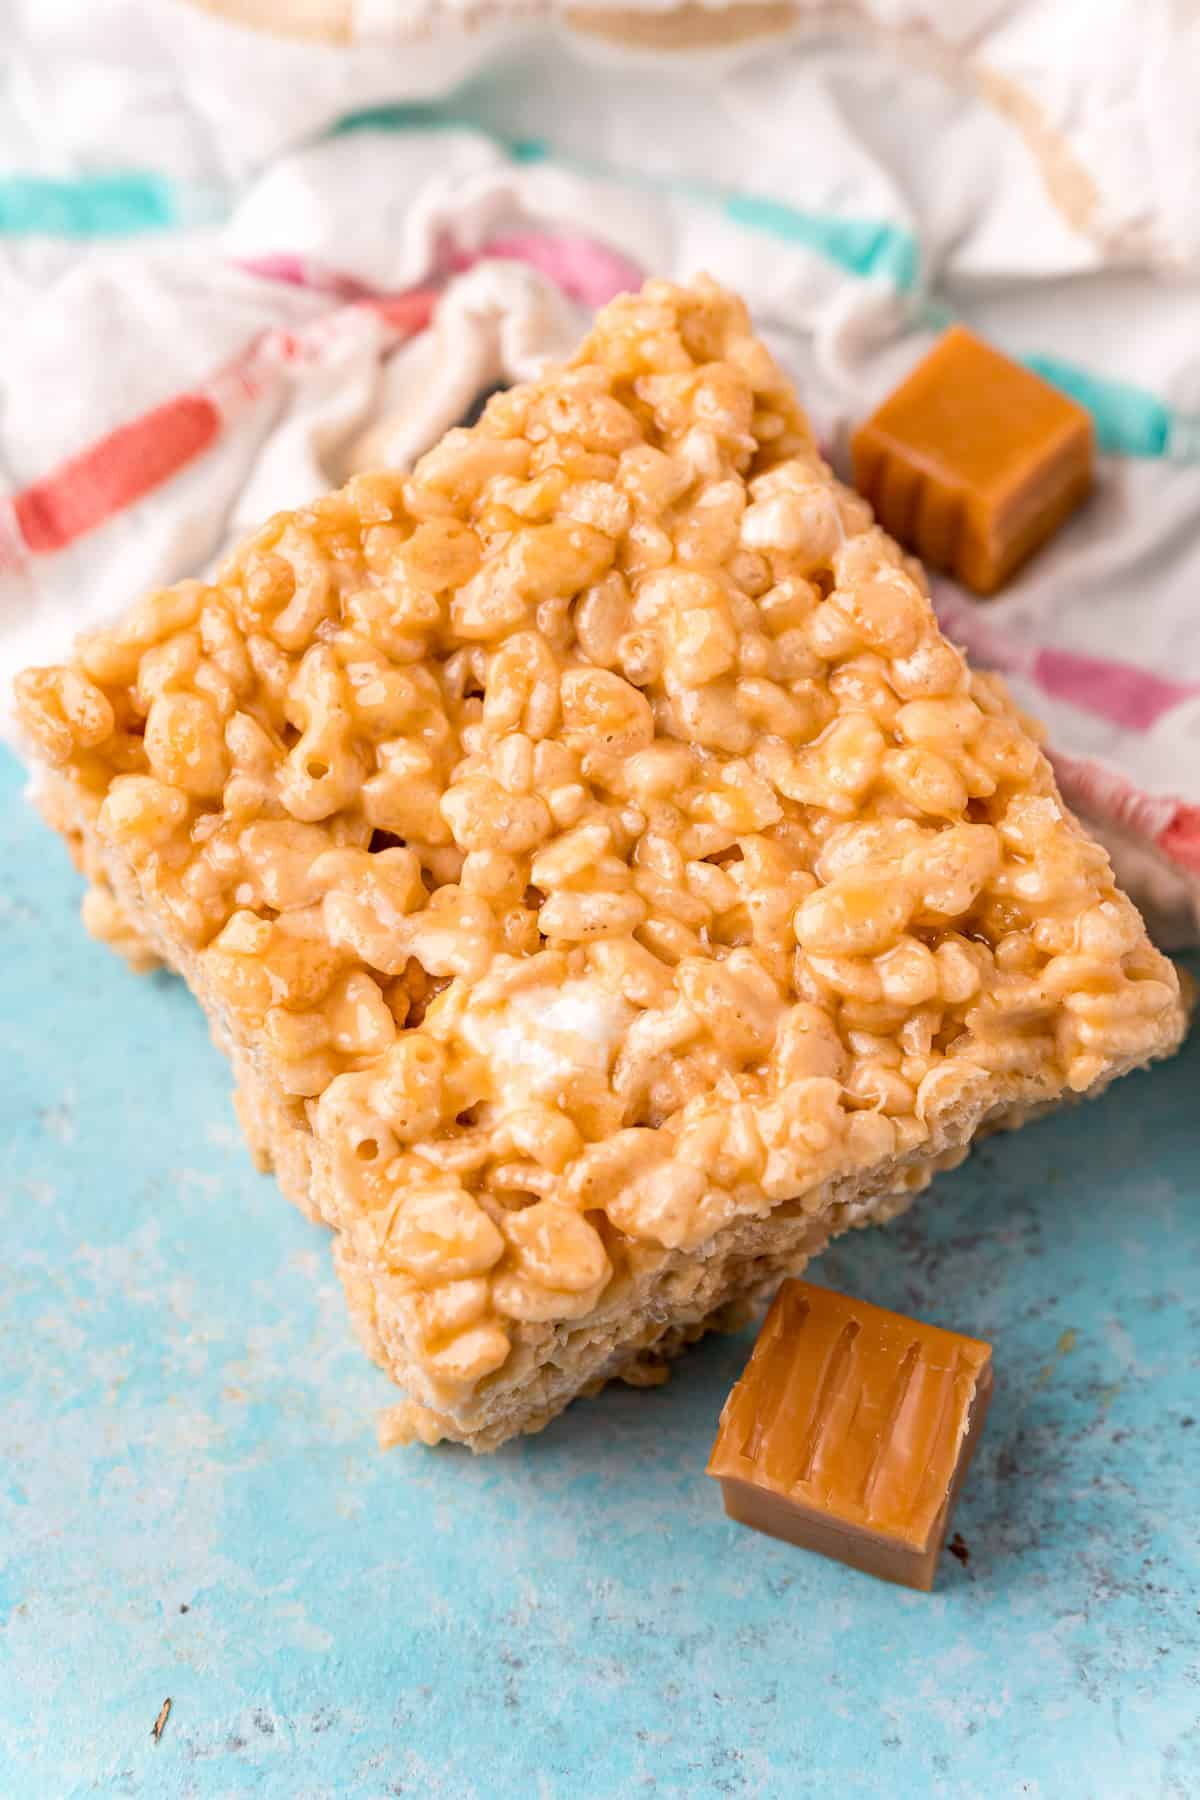 One Salted Caramel Rice Krispie Treat next to caramels